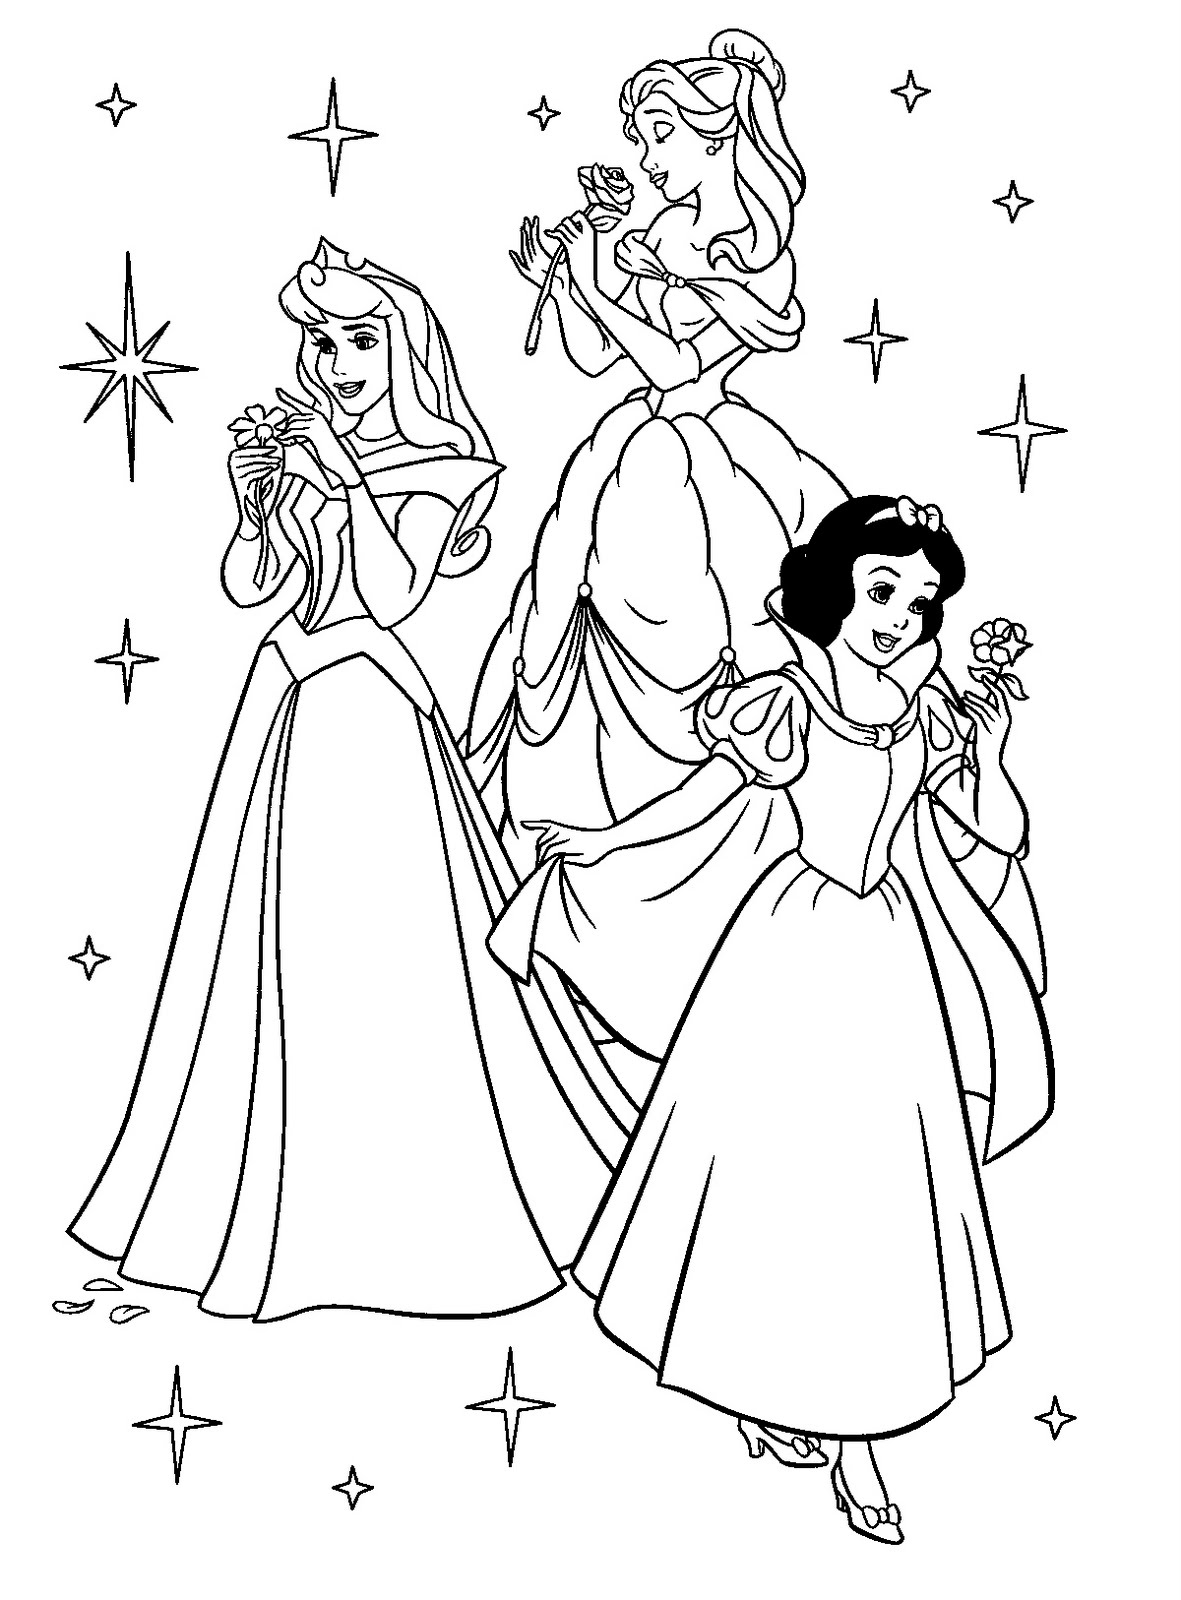 Principesse disney da stampare e colorare for Principesse disney da colorare